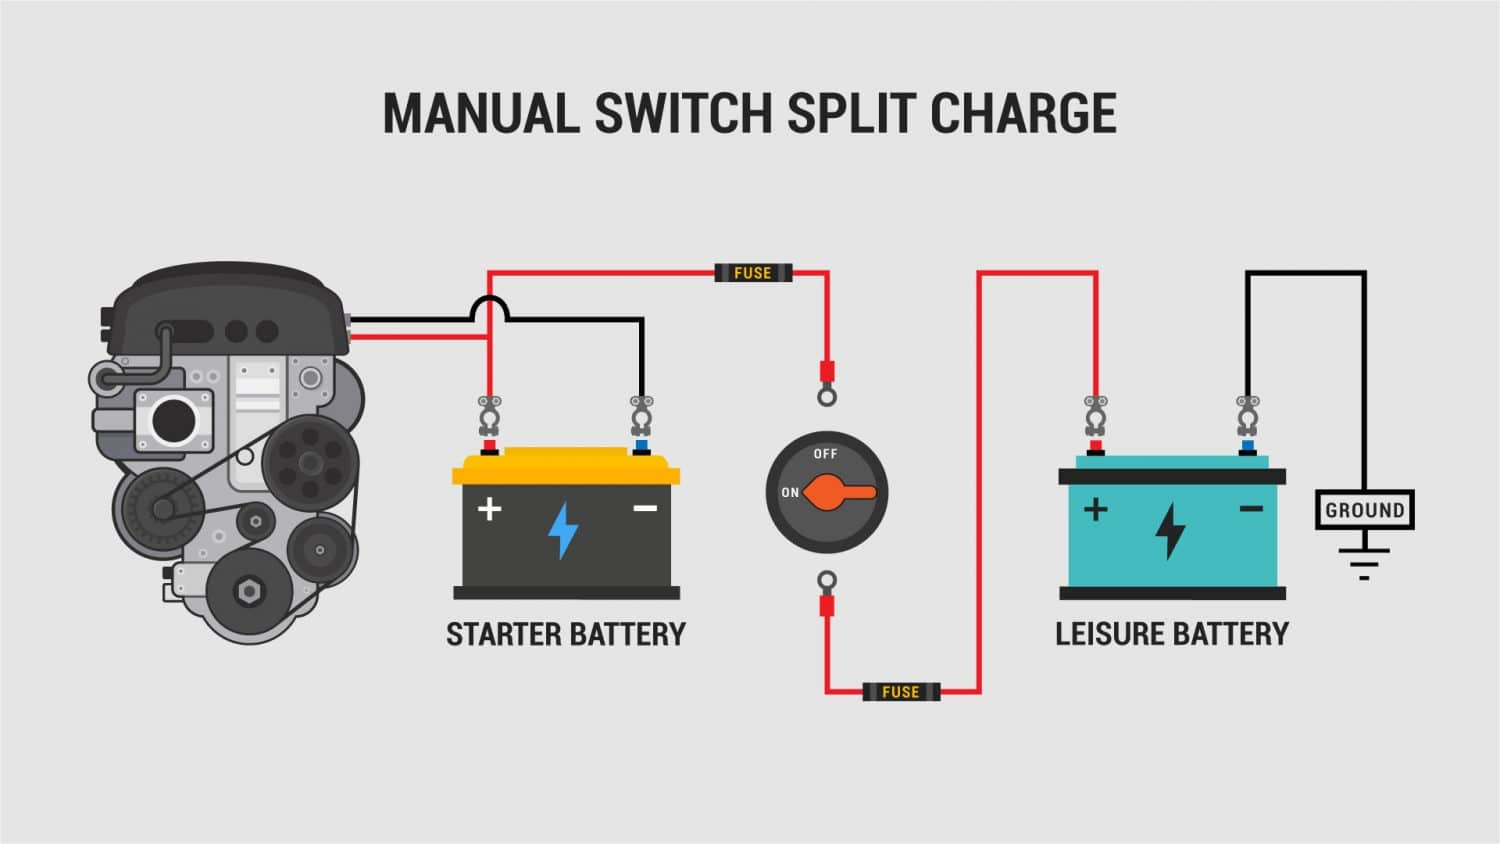 hight resolution of a typical 12v manual switch split charge campervan wiring diagram